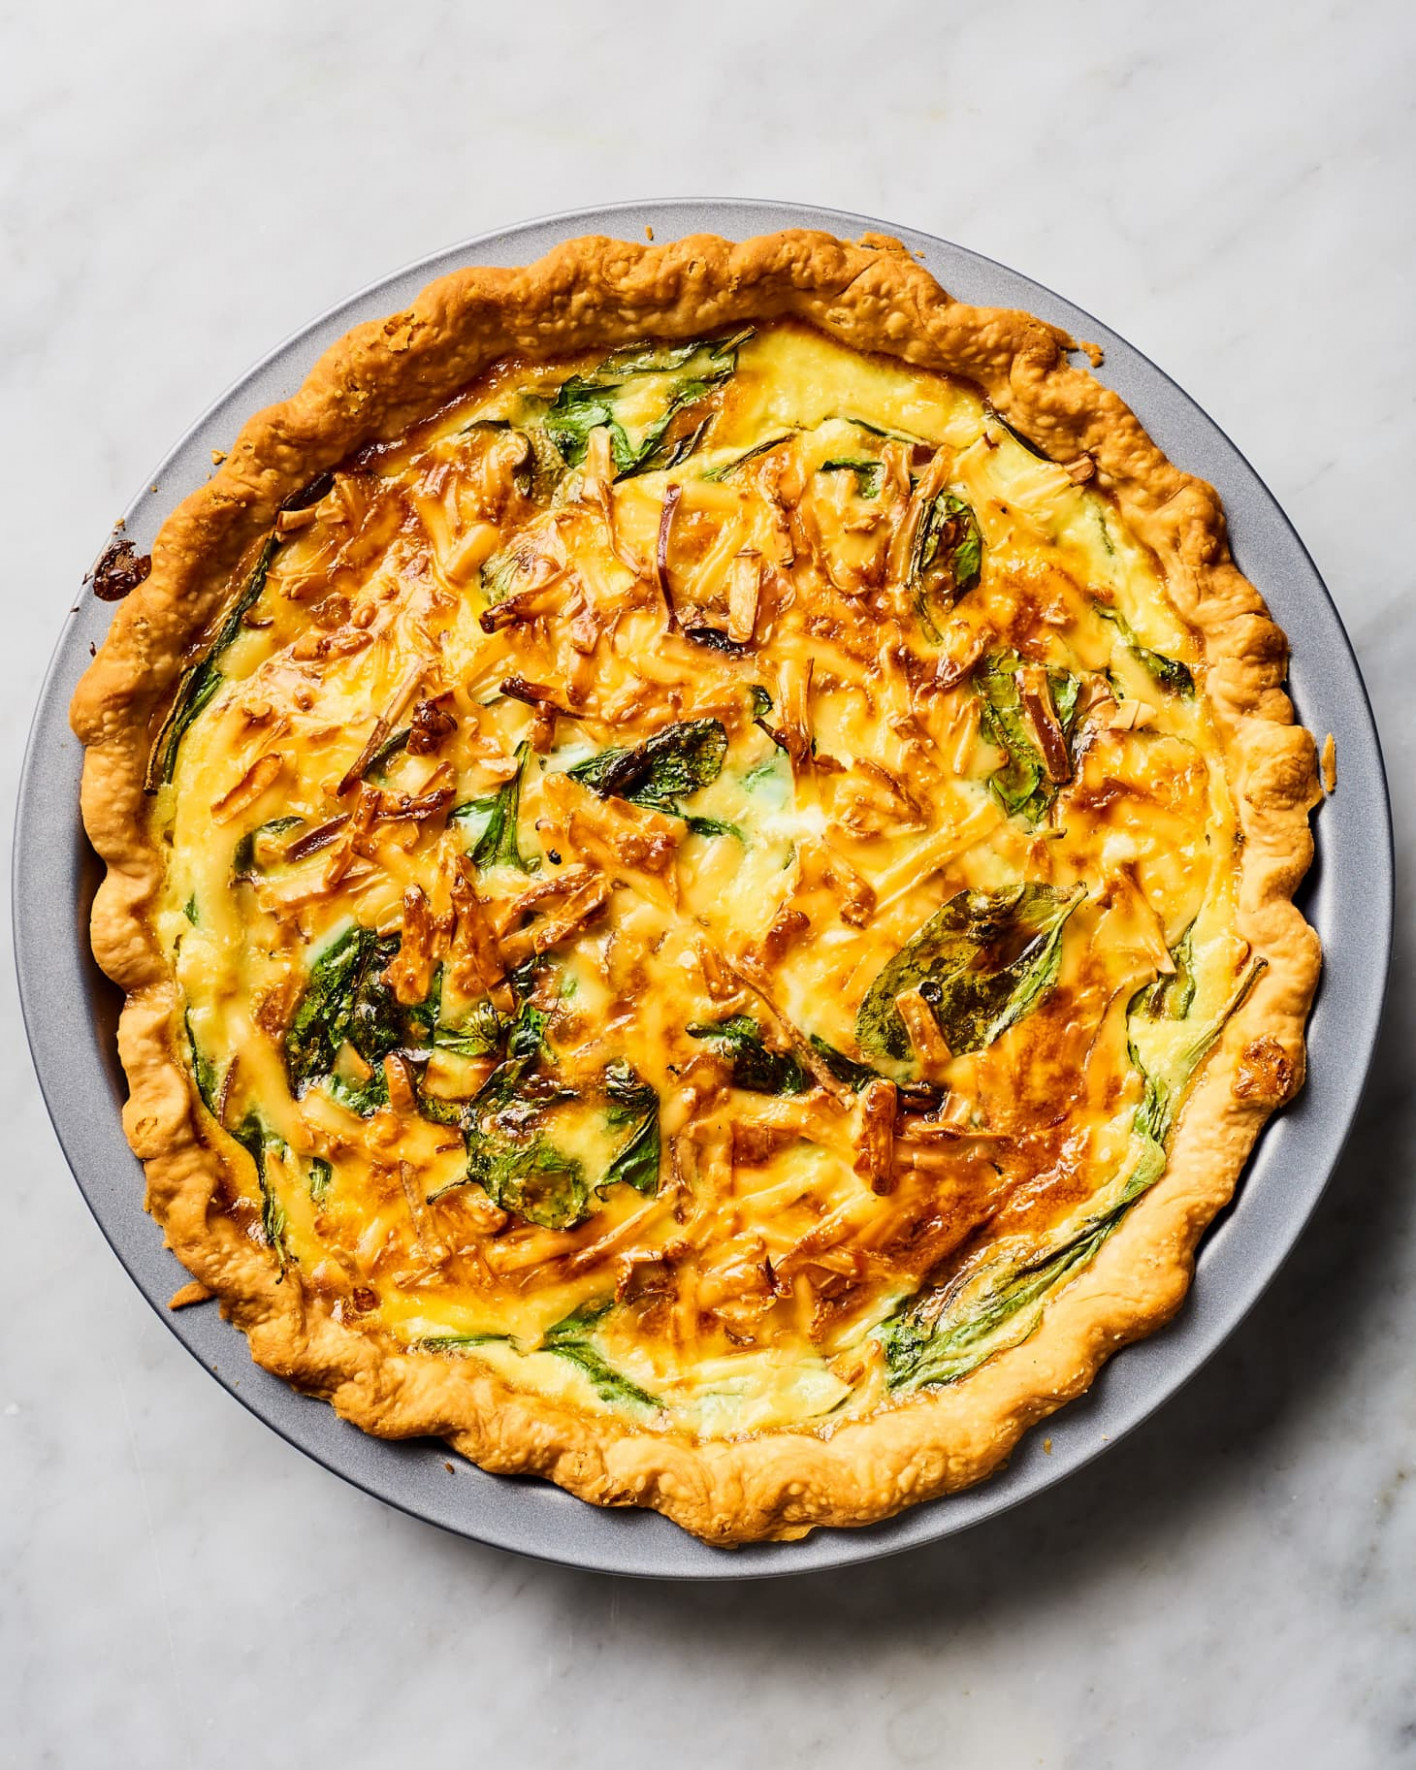 Spinach Quiche Recipe - recipe vegetarian quiche spinach